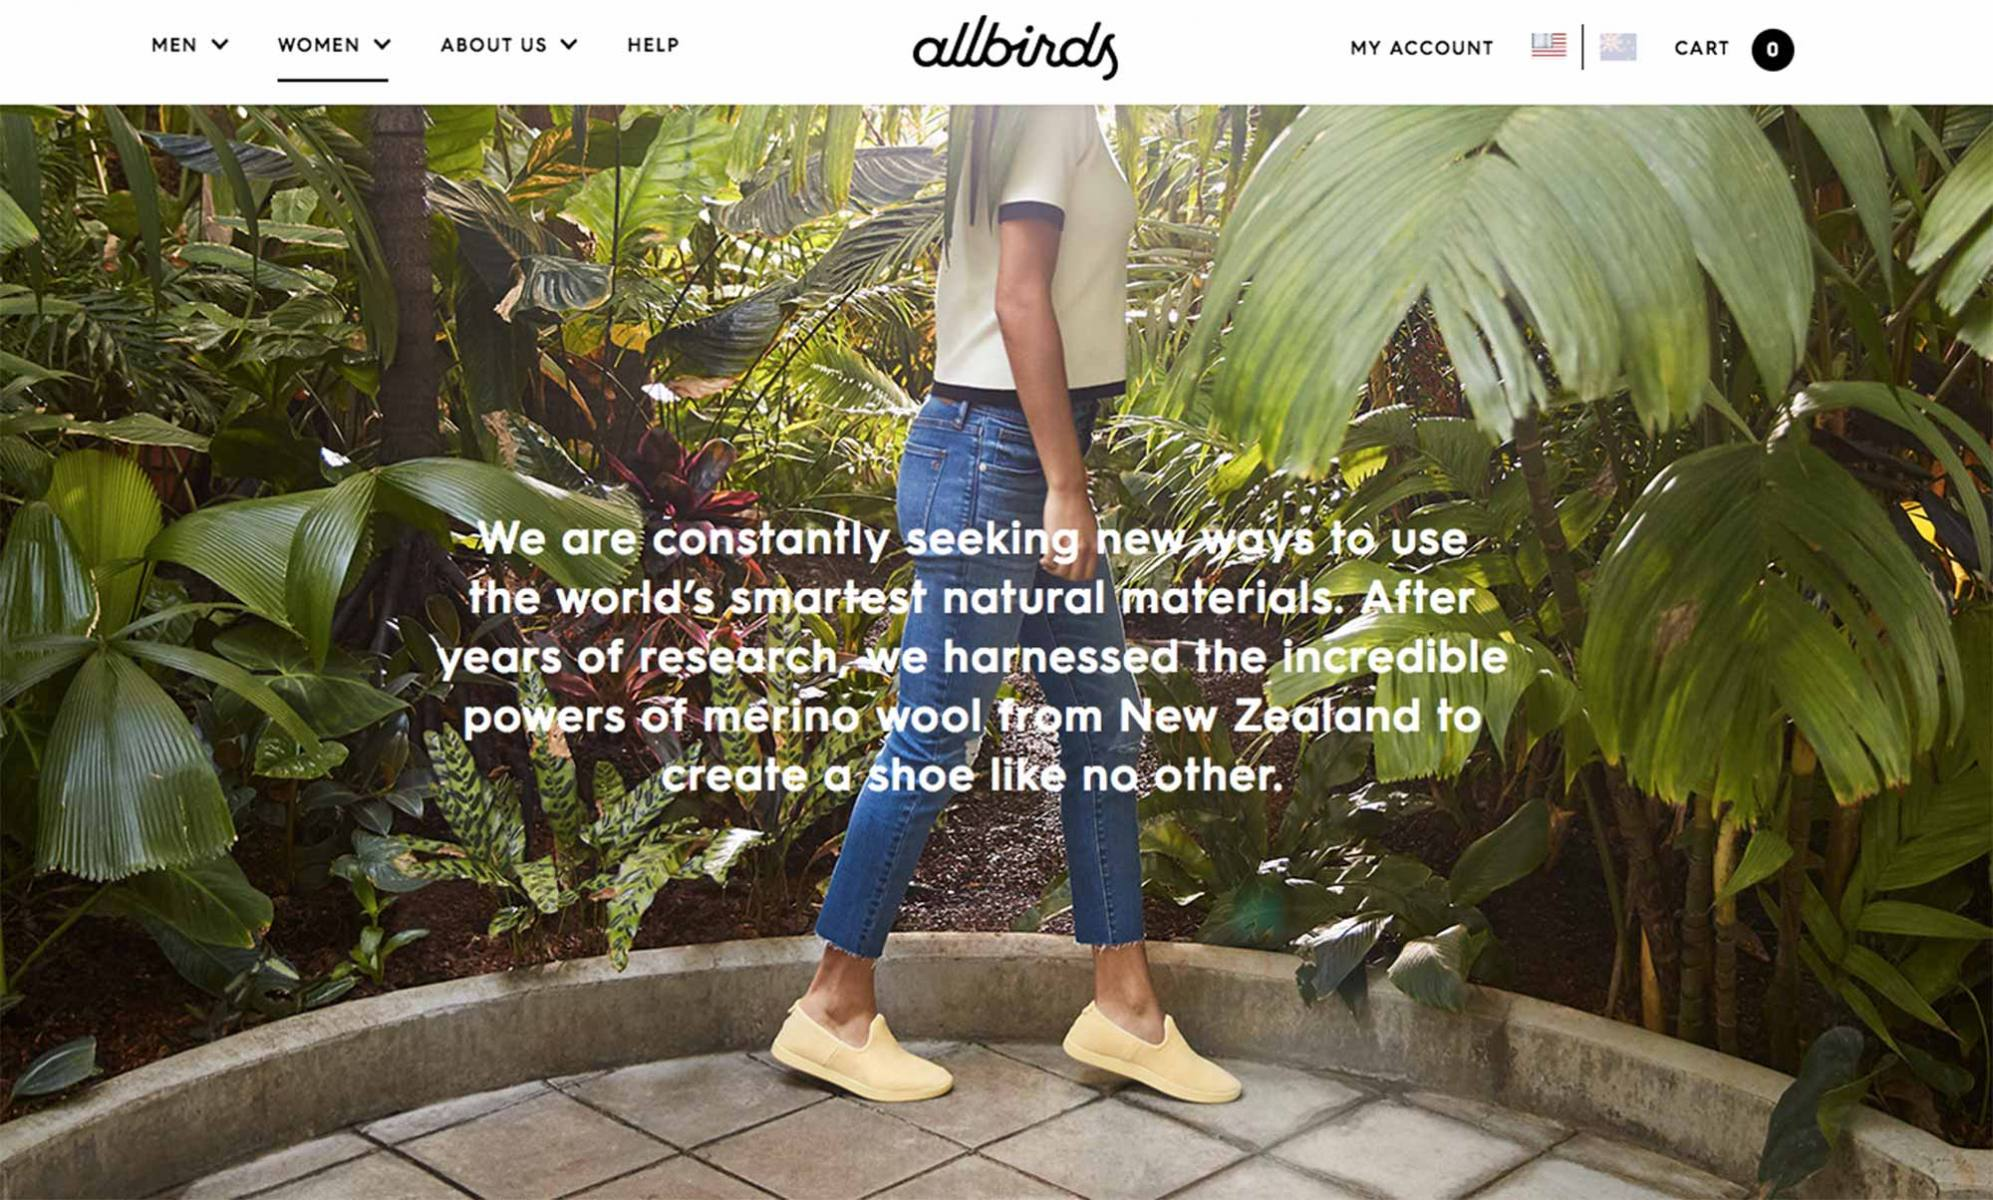 05-allbirds-allbirds.com_3